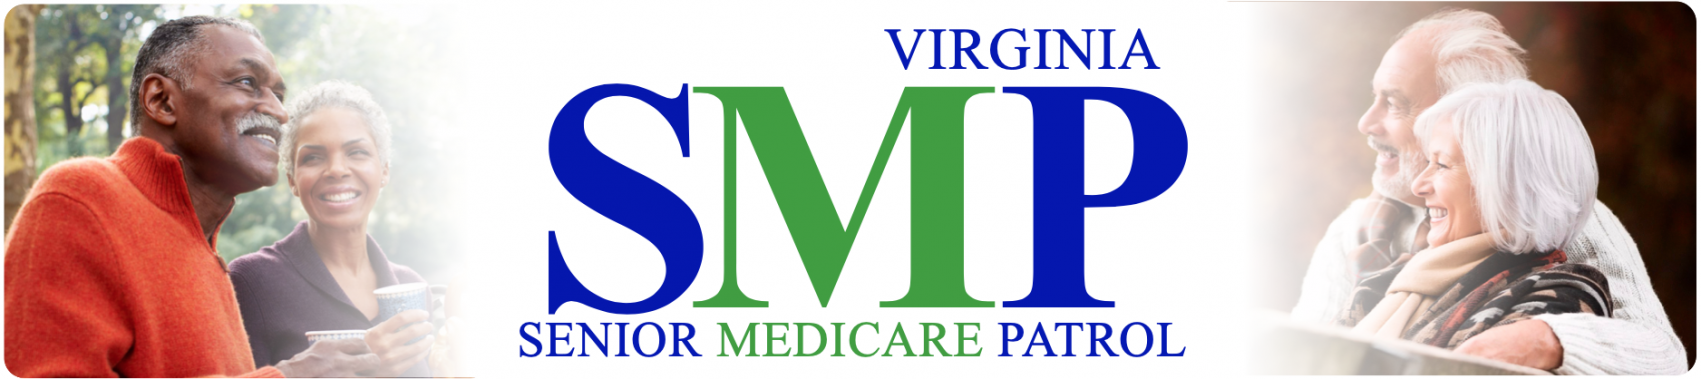 The Virginia SMP